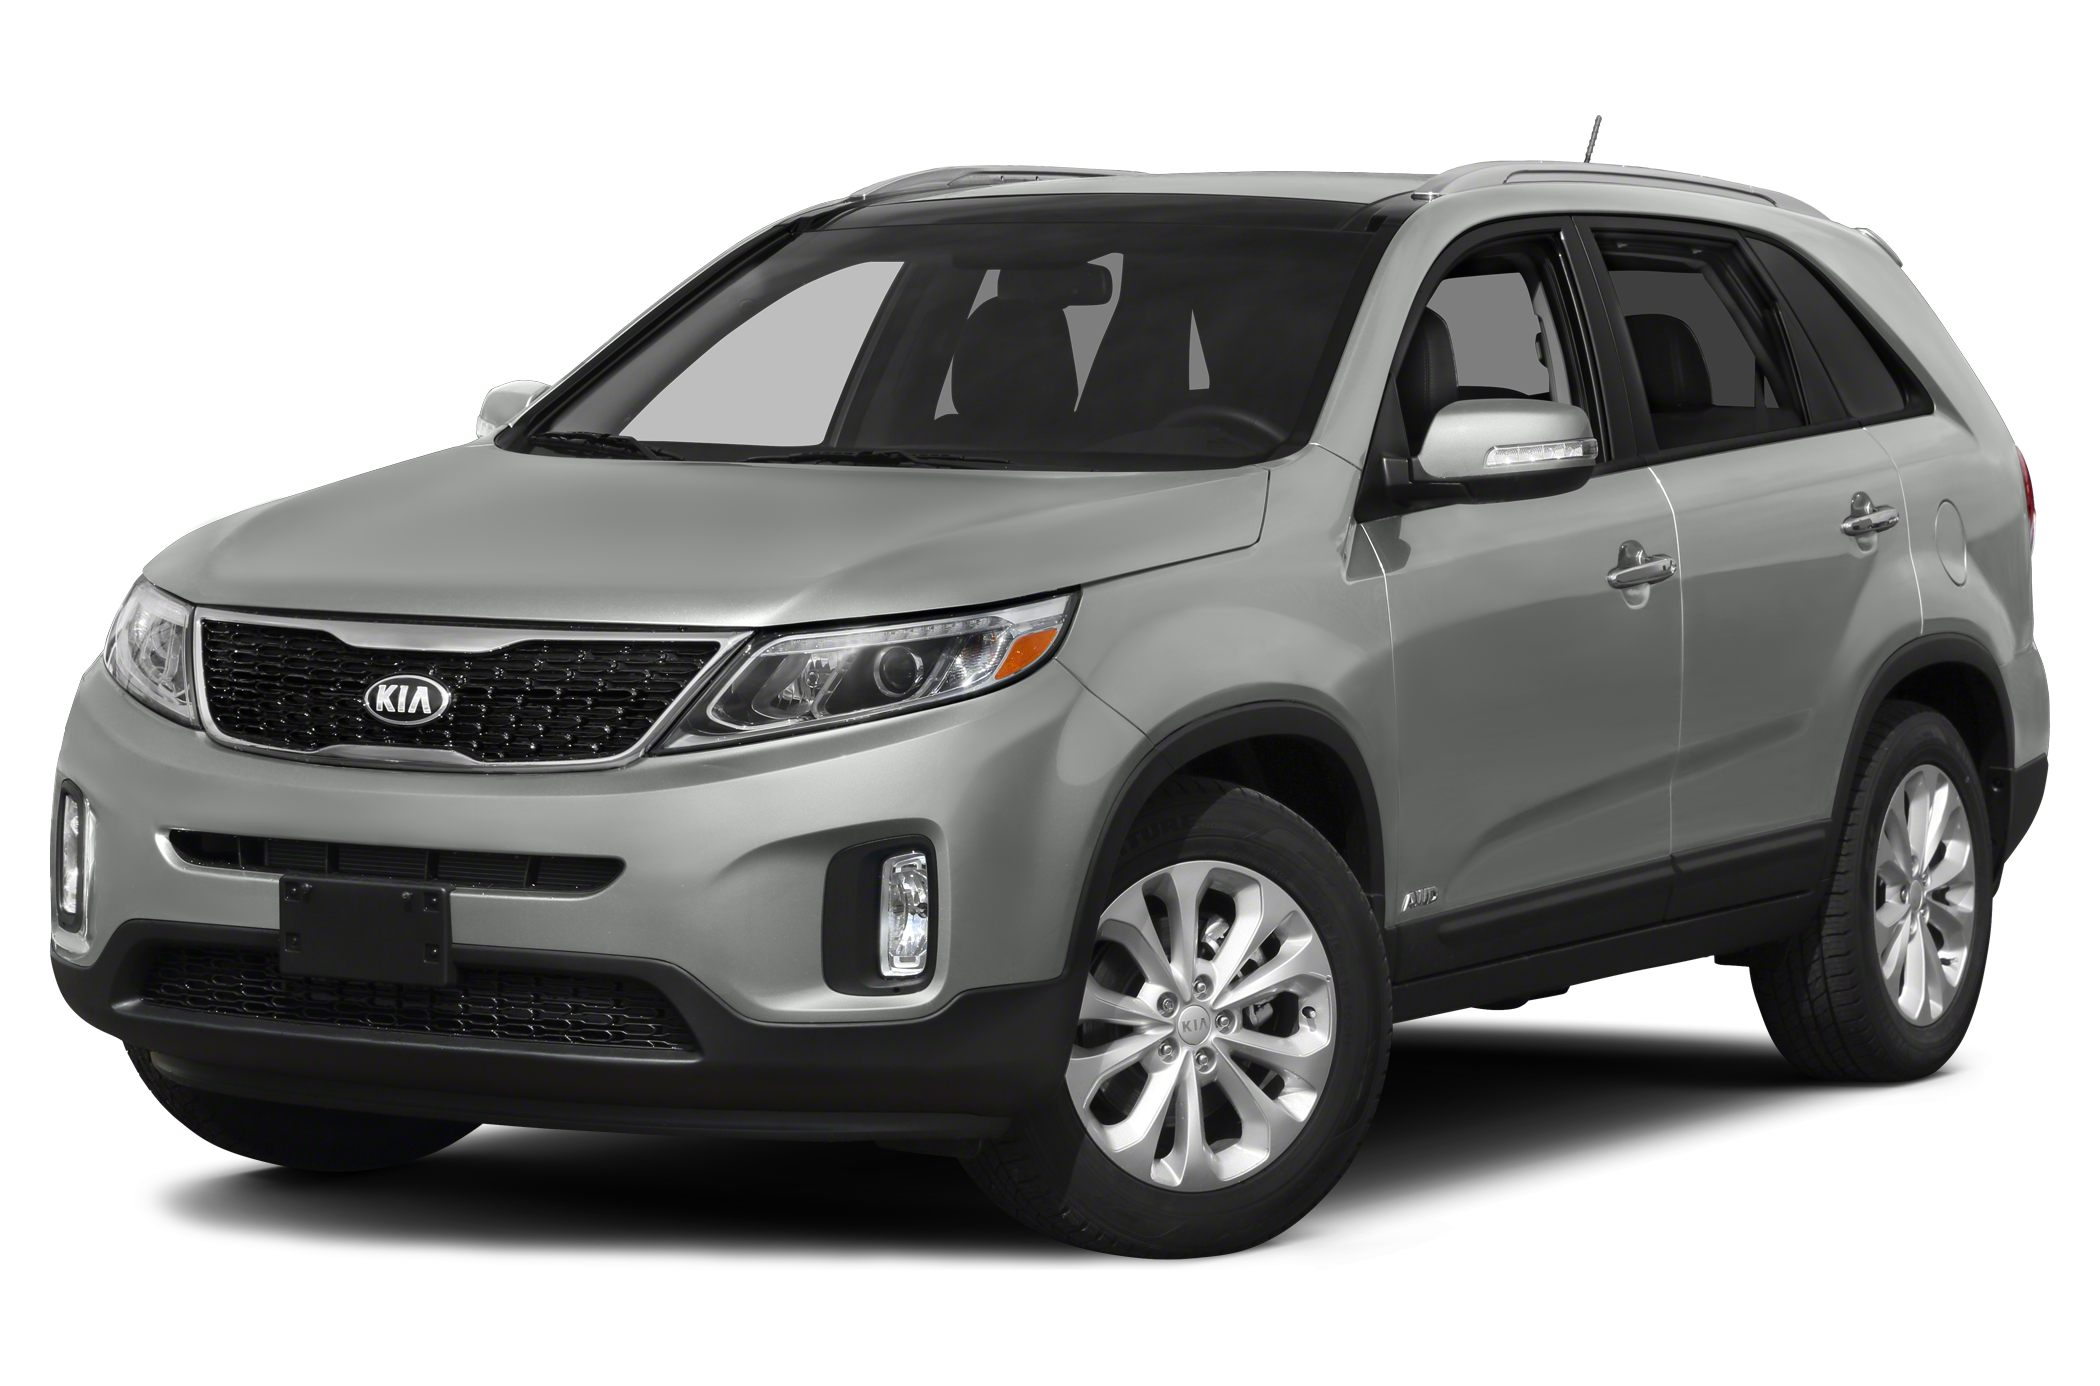 2015 Kia Sorento LX Red and Ready Power To Surprise This is arguably the sharpest vehicles in La